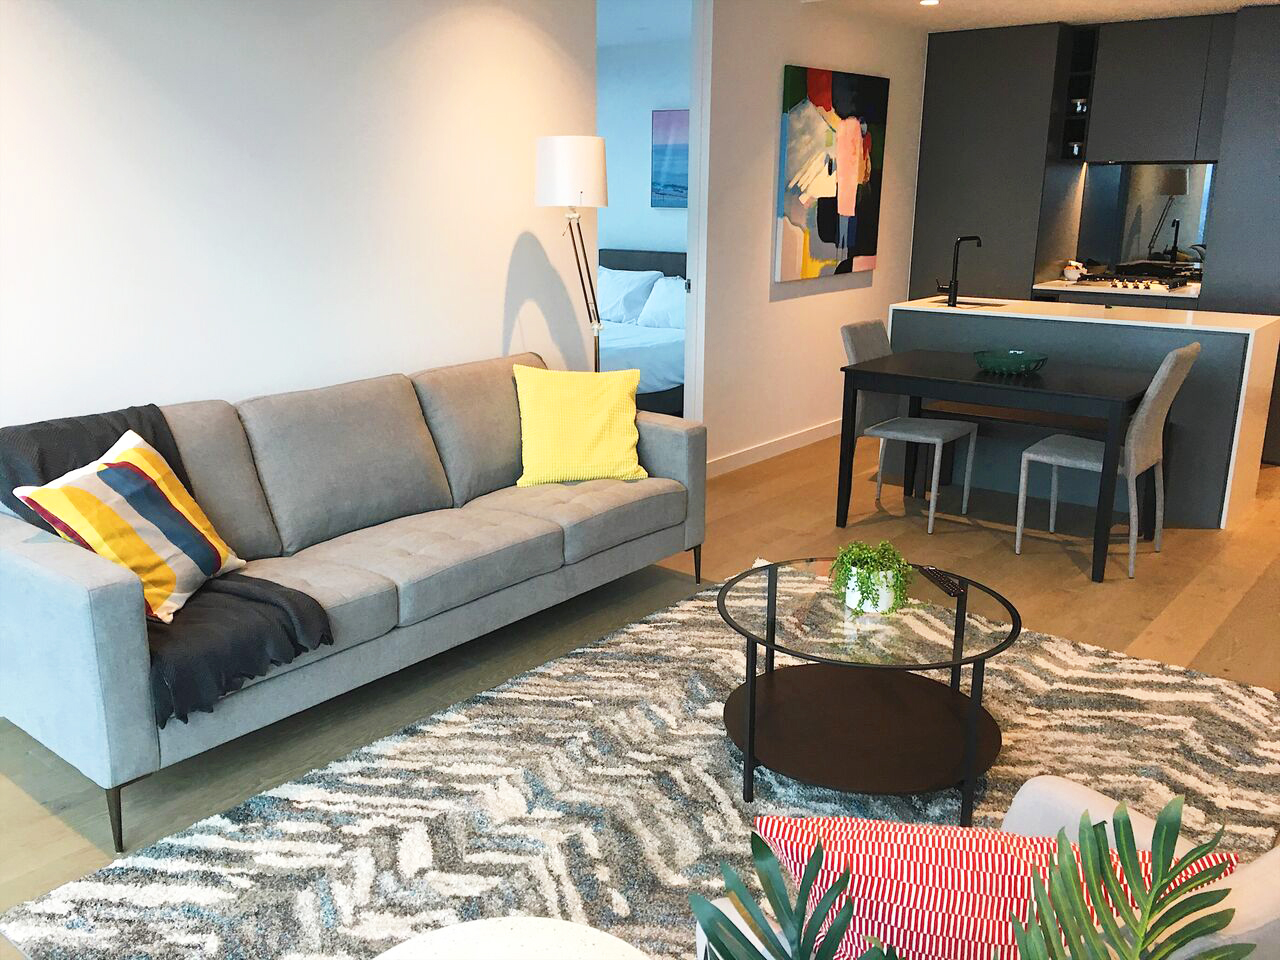 Melbourne CBD Airbnb - decorating on a budget